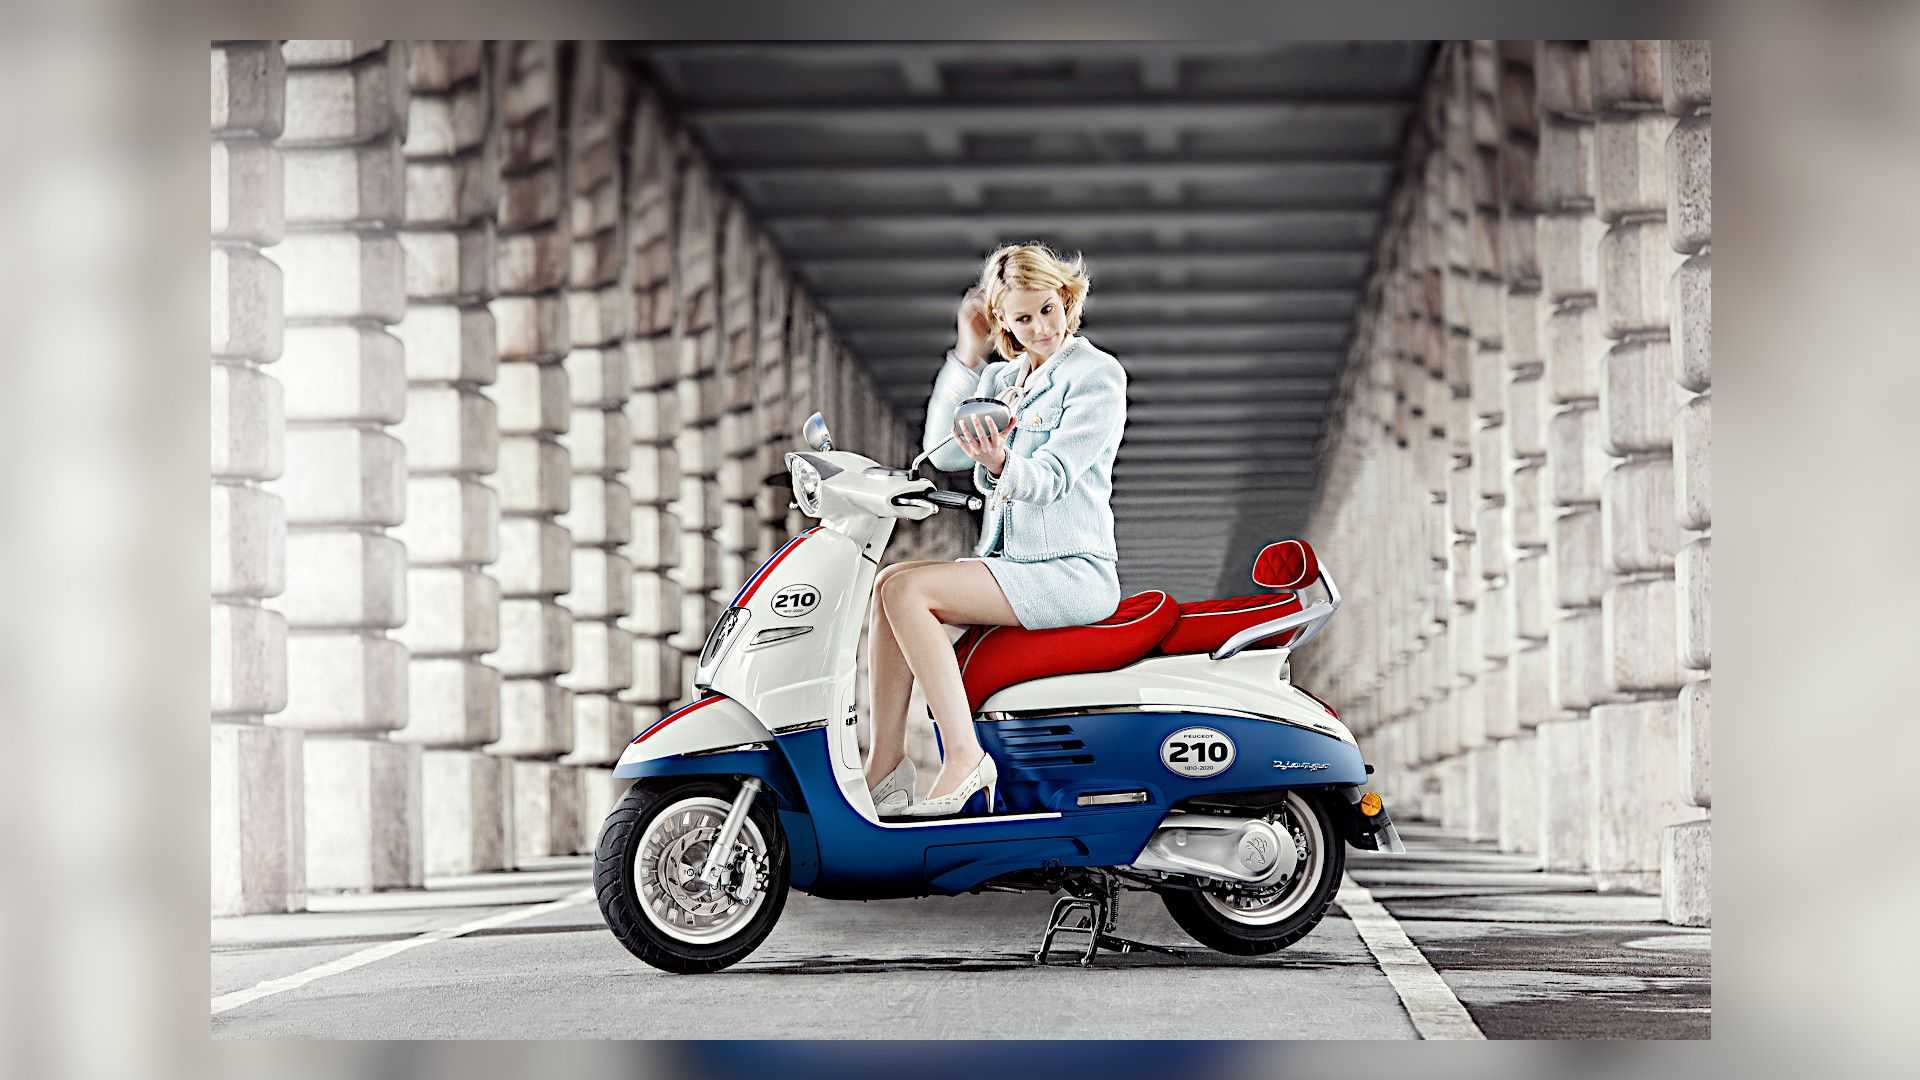 Peugeot Launches 210th Anniversary Django 125 Scooter